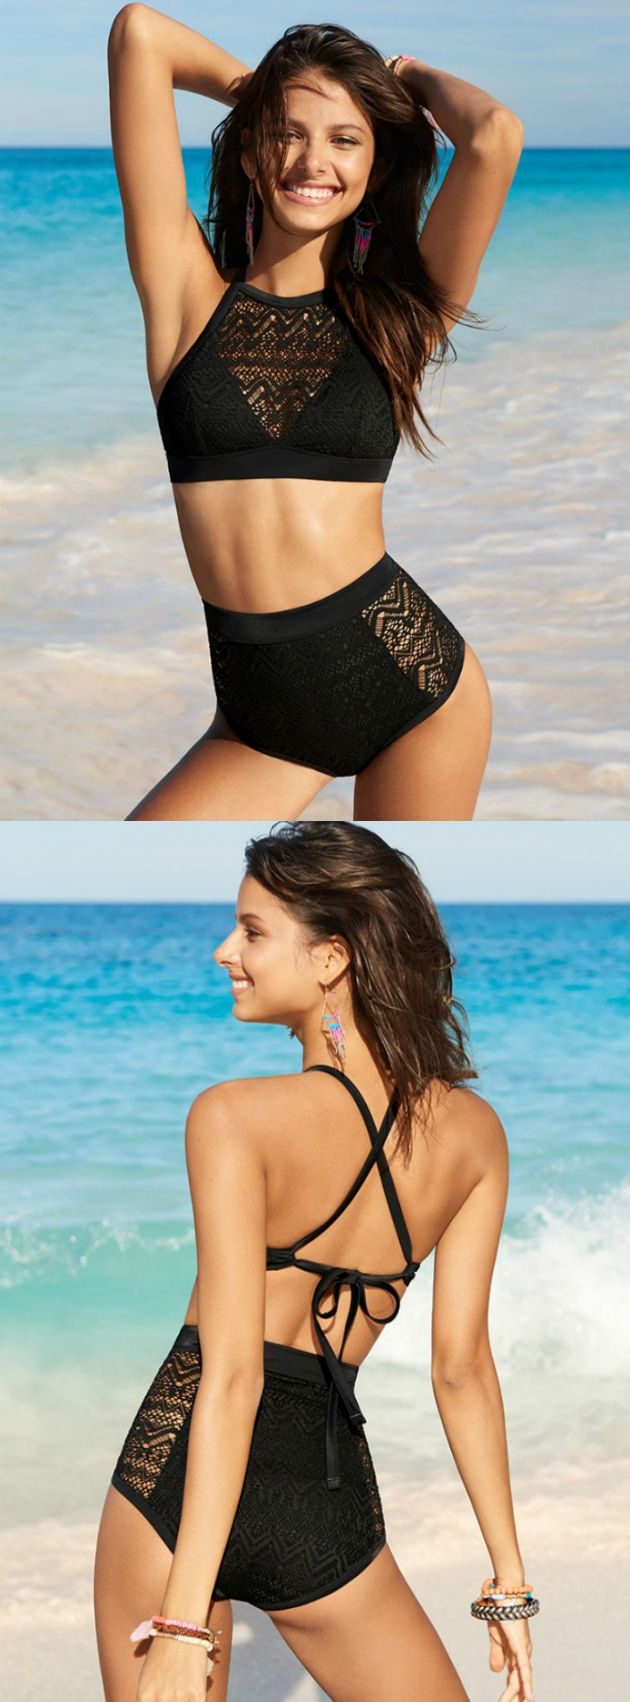 The summer crochet trend is here to stay! Eyes will be on you in this high neck style